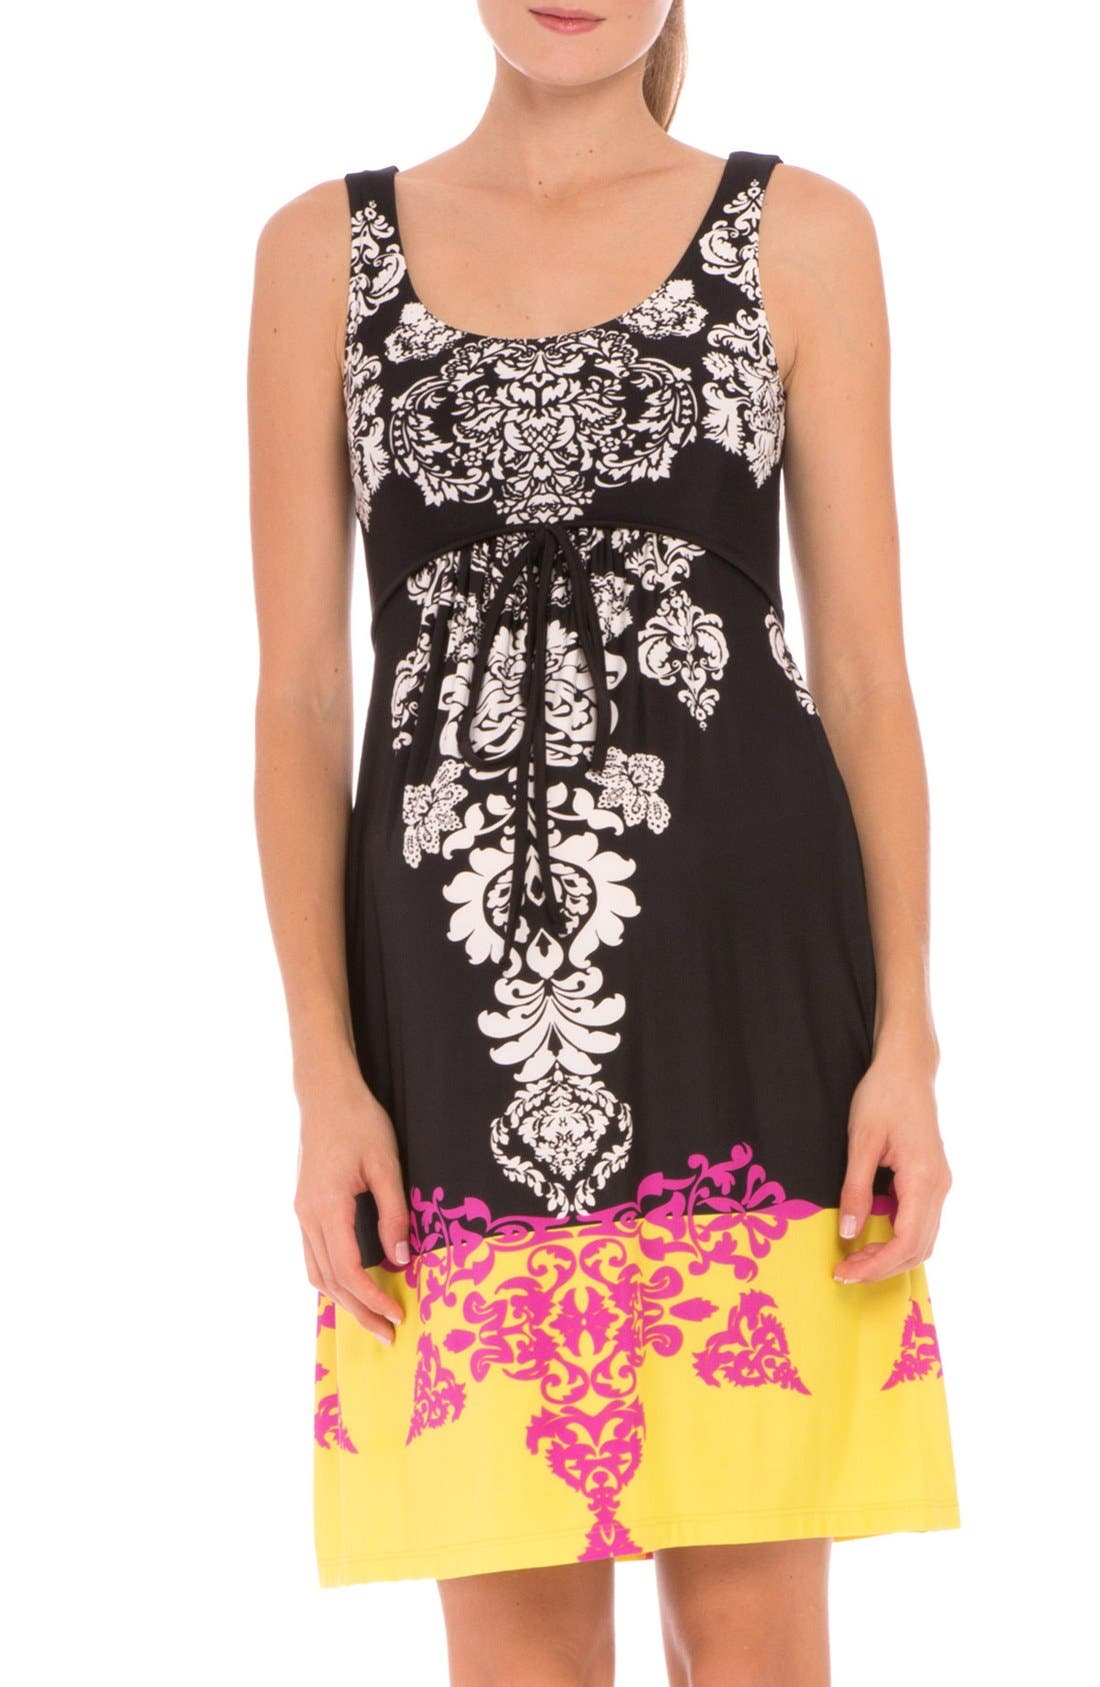 'Eloise' Graphic Maternity Dress,                             Main thumbnail 1, color,                             Black/ Yellow Print